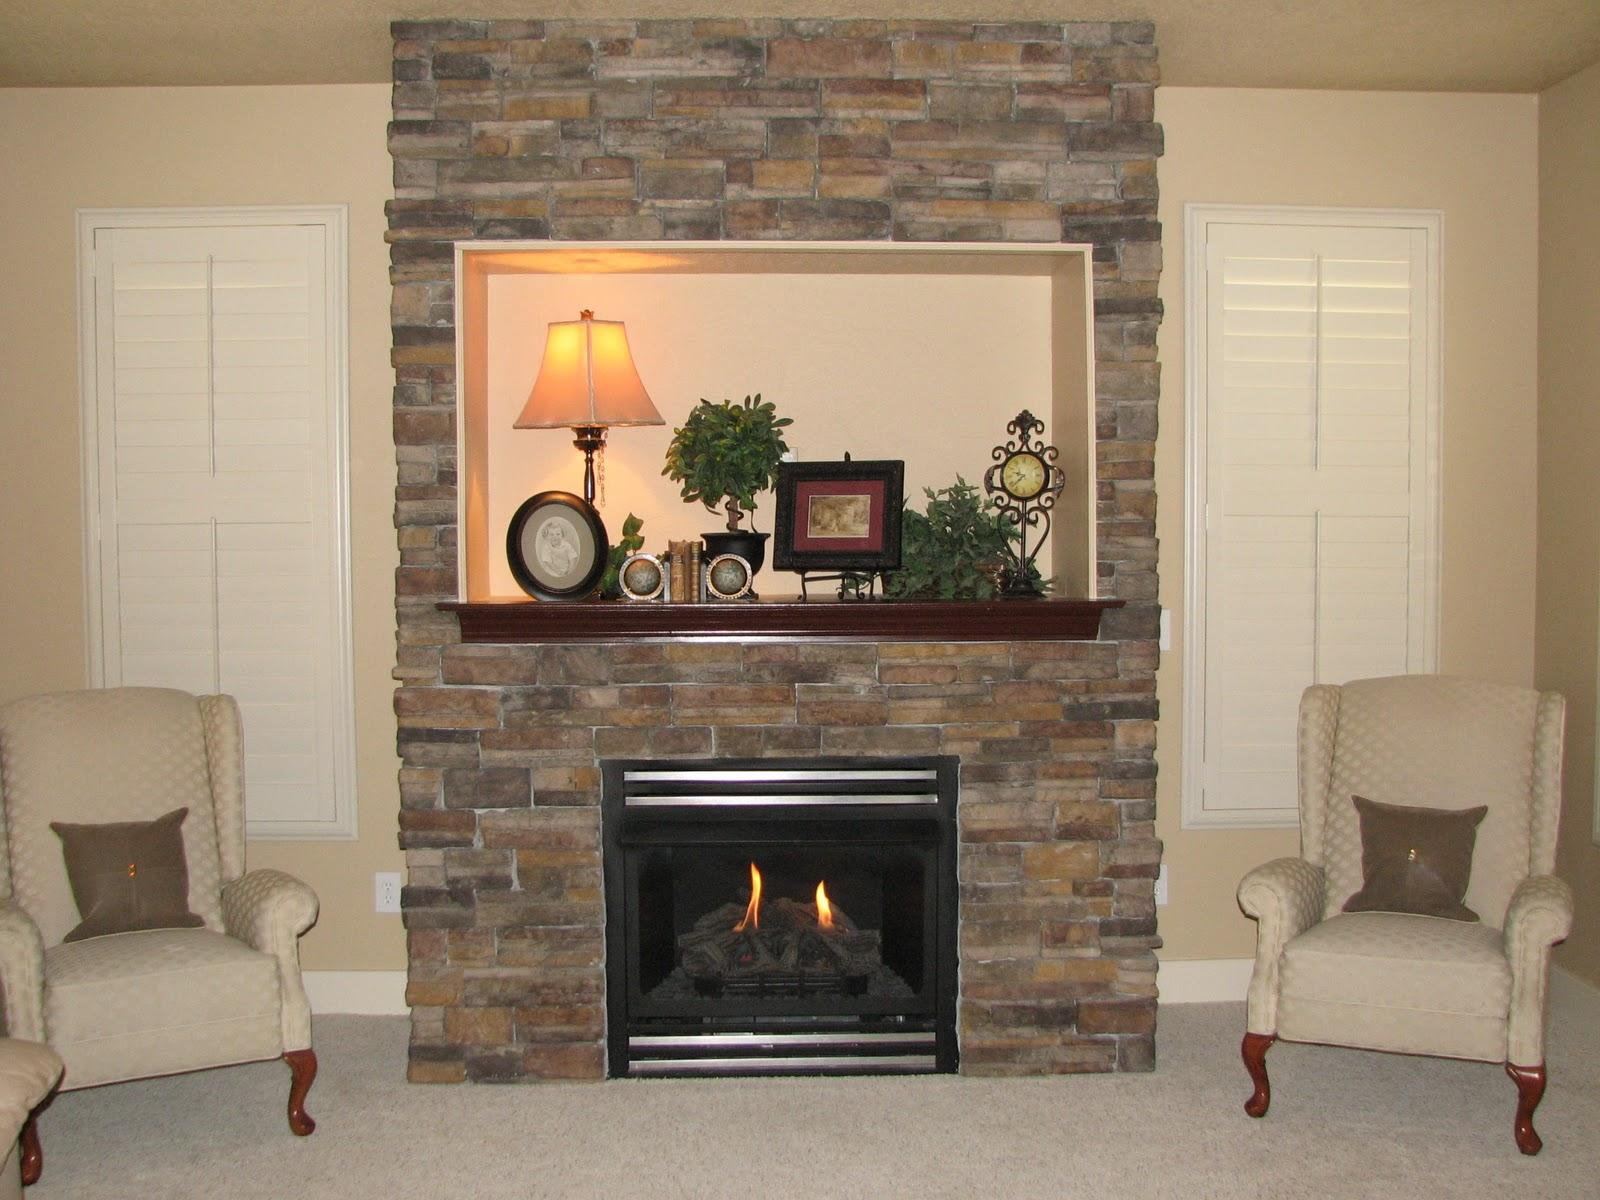 How To Build A Stone Fireplace Surround | FIREPLACE DESIGN IDEAS